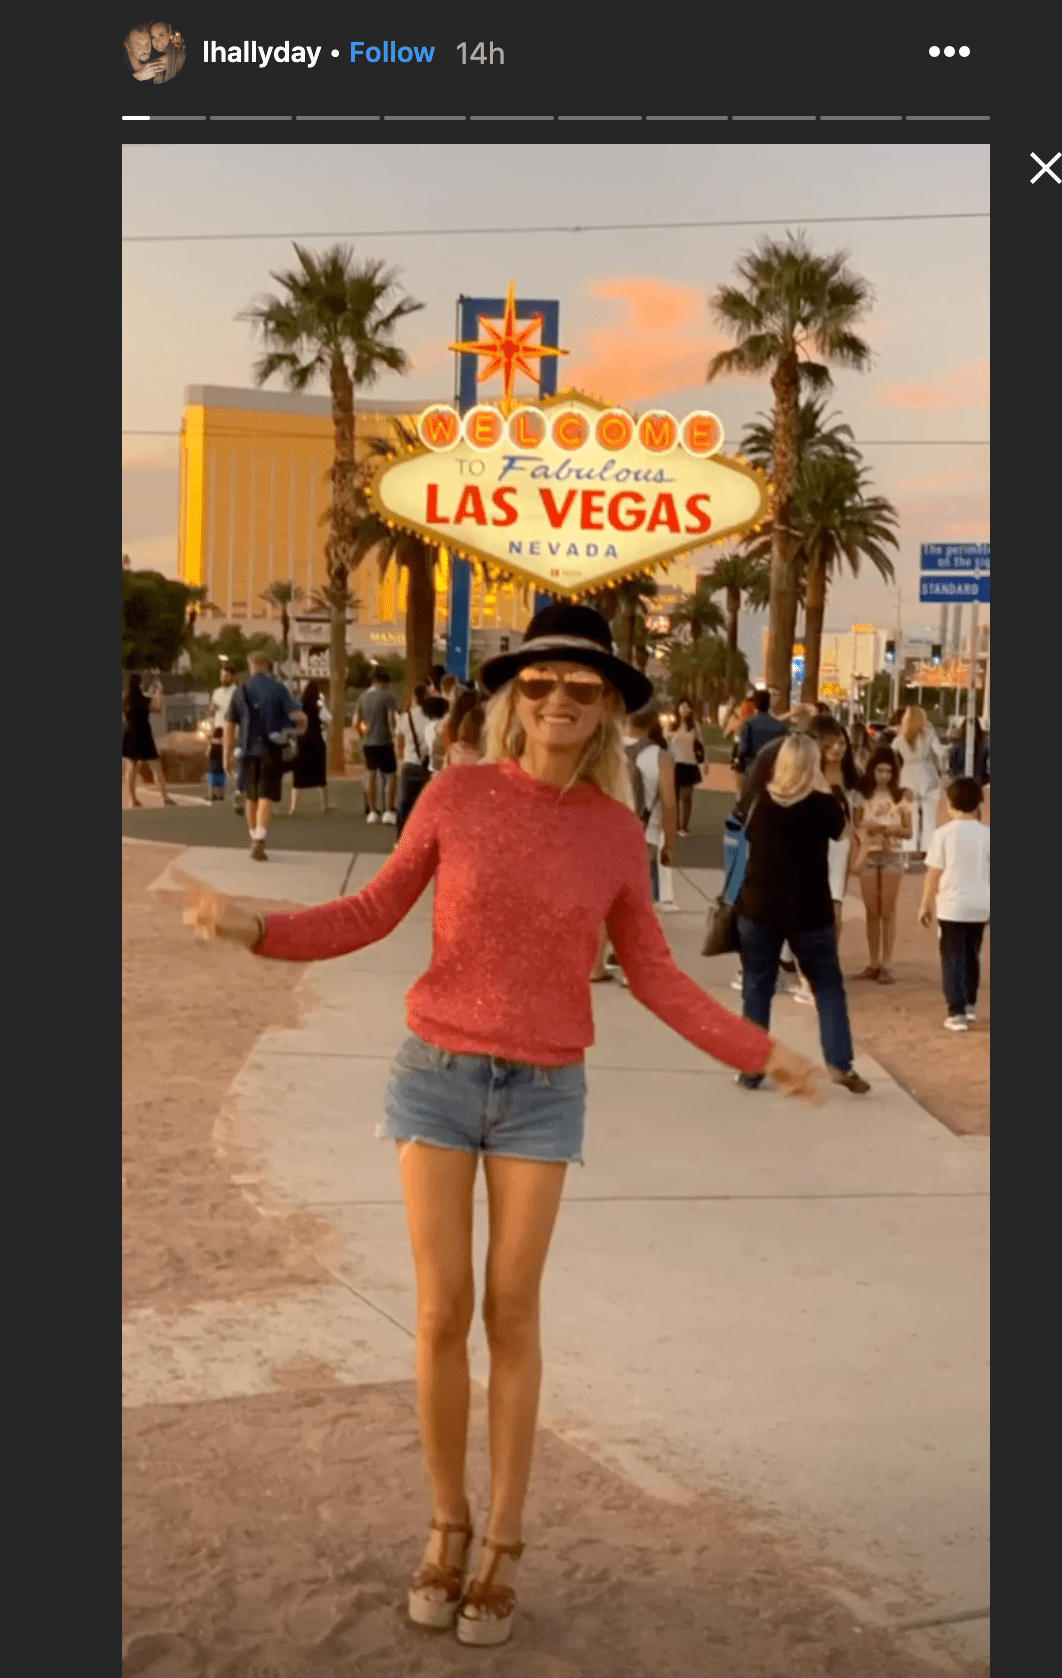 Laeticia hallyday prend une photo à Las Vegas | Photo : Instagram/lhallyday